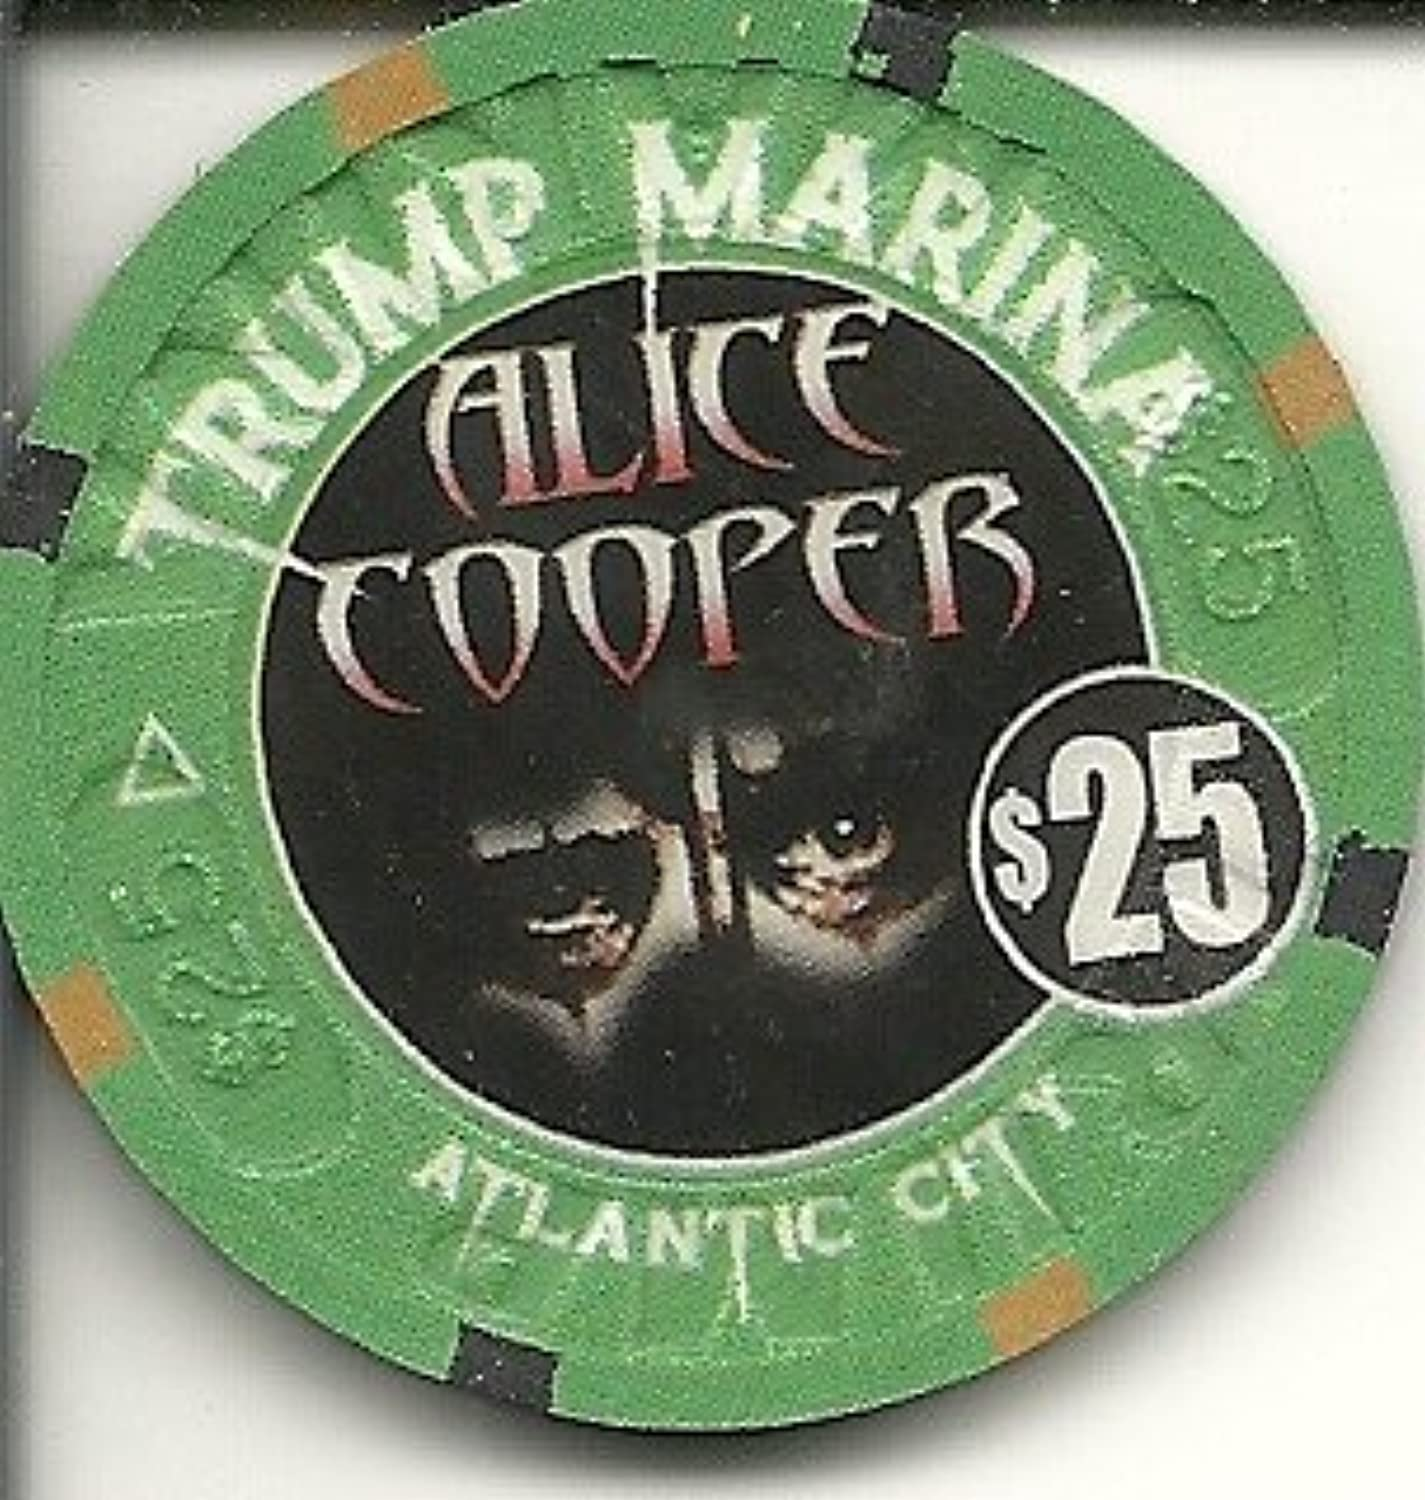 $ 25 Trump Marina Alice Cooper Super Rare Atlantic Cityカジノチップ